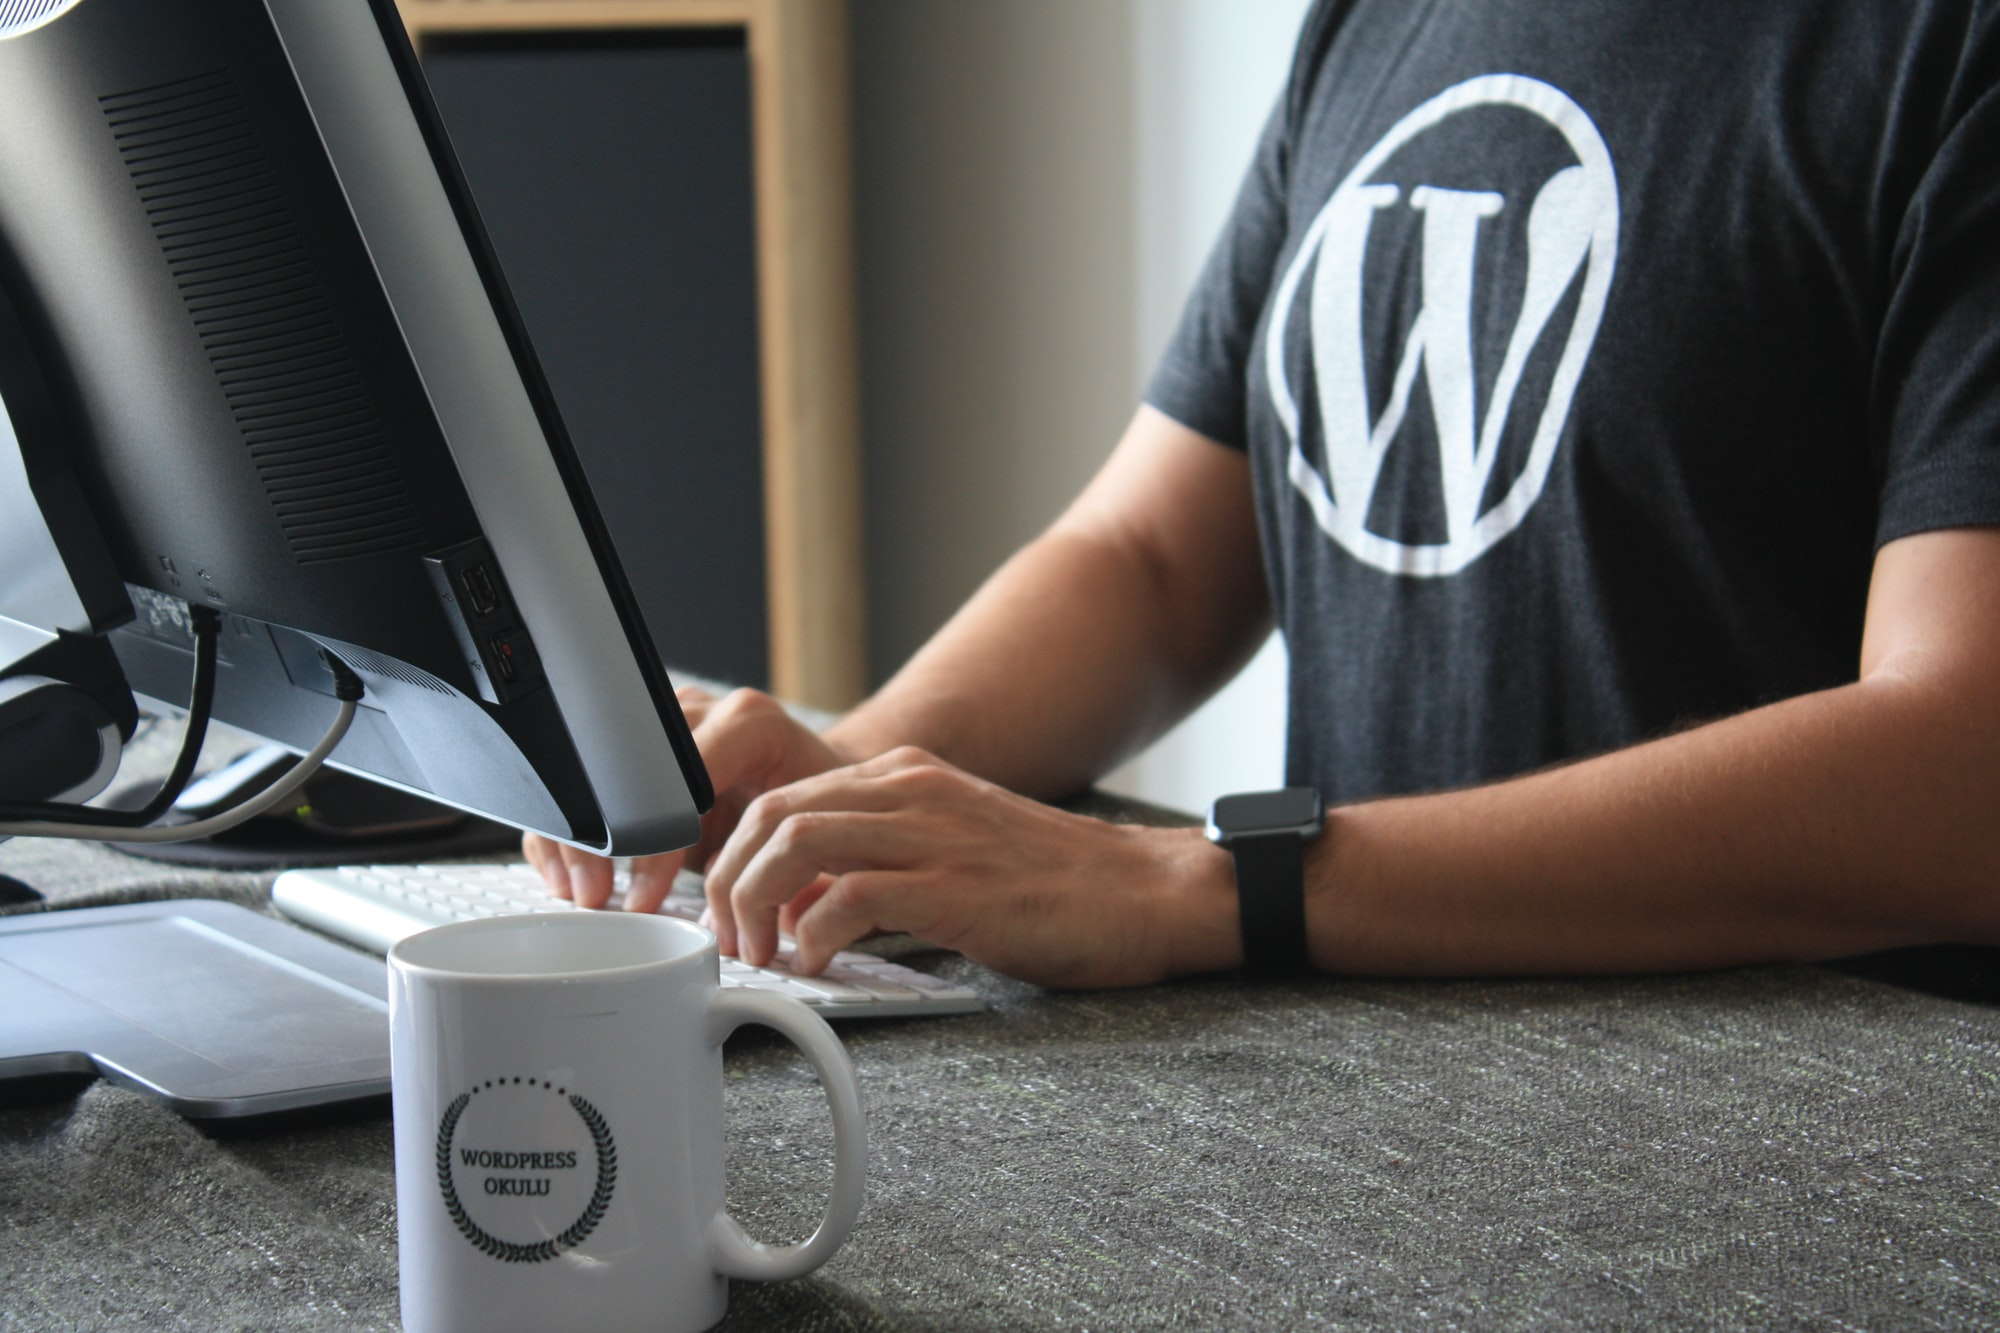 Can You Use Bluehost Without Using WordPress?